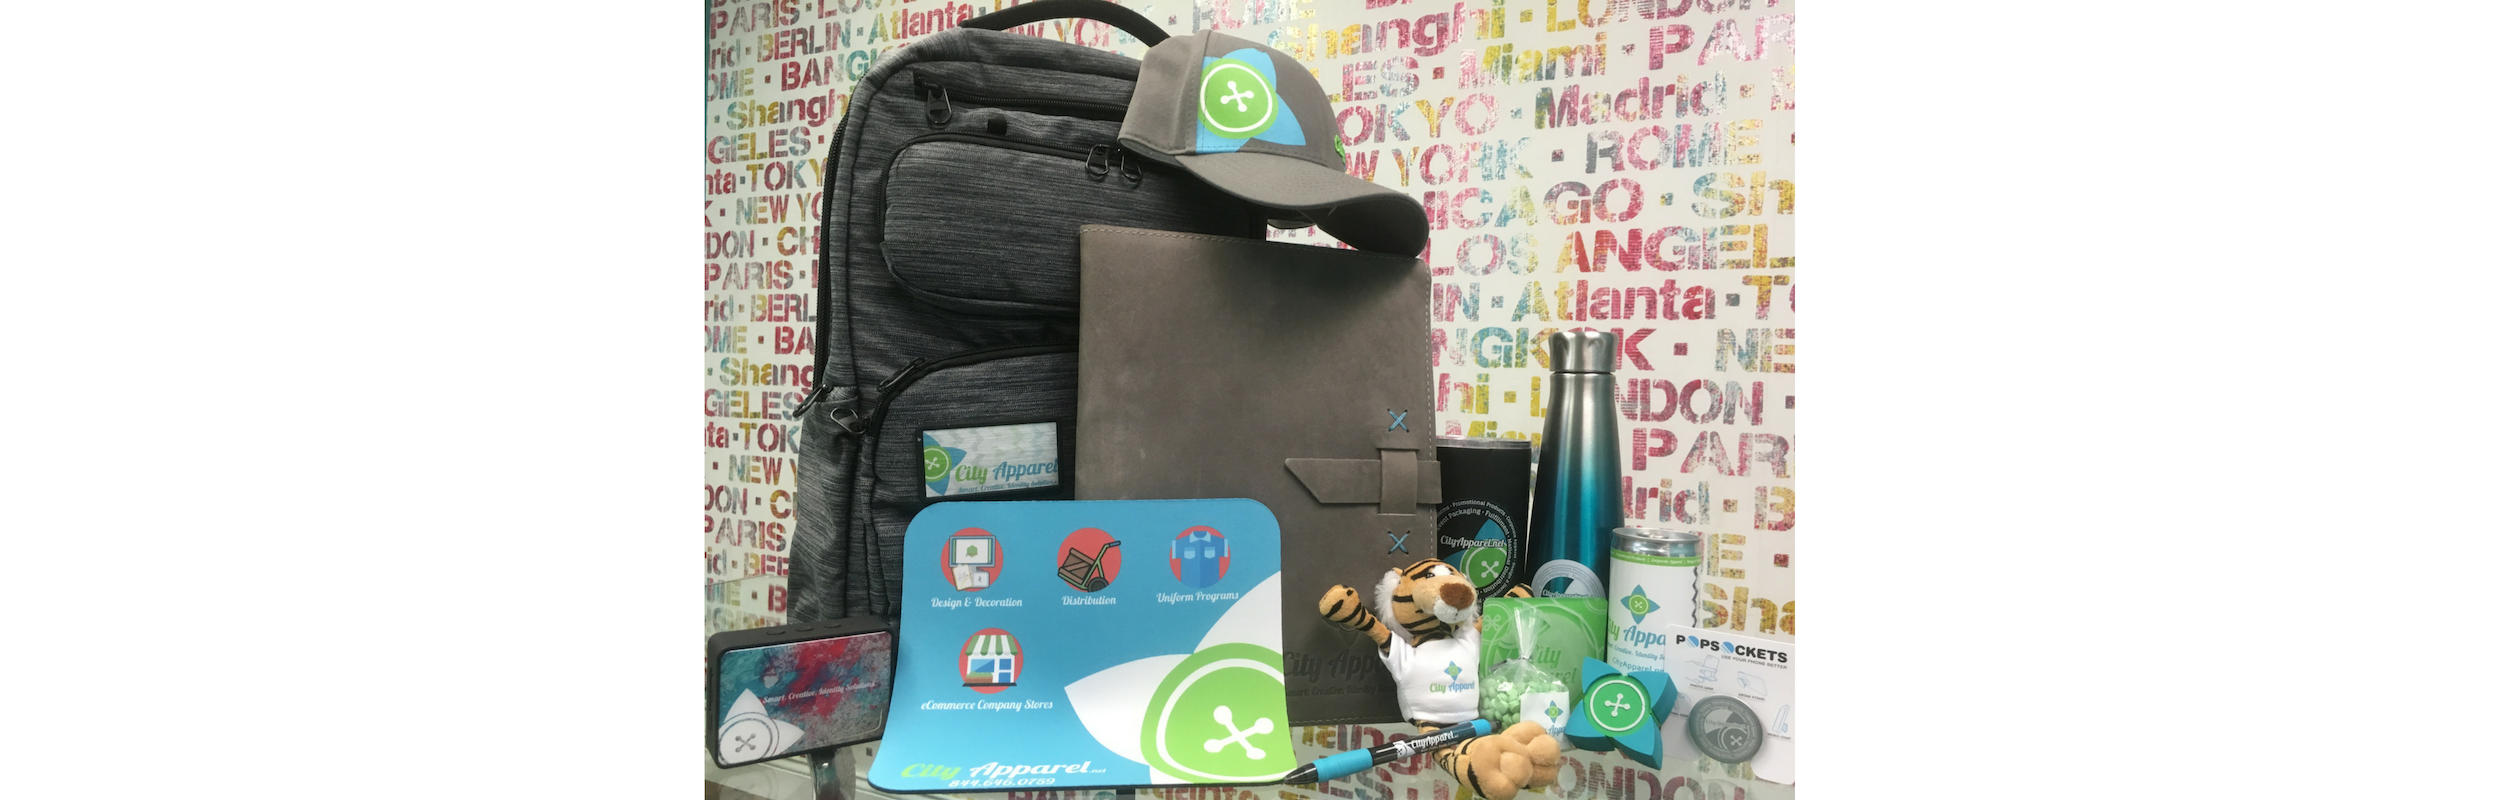 Pictured Left to Right: Bluetooth Speaker, Backpack, Mouse Pad, Portfolio, Hat, Pen, Stuffed Animal, Hot or Cold Tumbler, Coster, Stainless Steal Water bottle, Mints, USB, Energy Drink, PopSocket